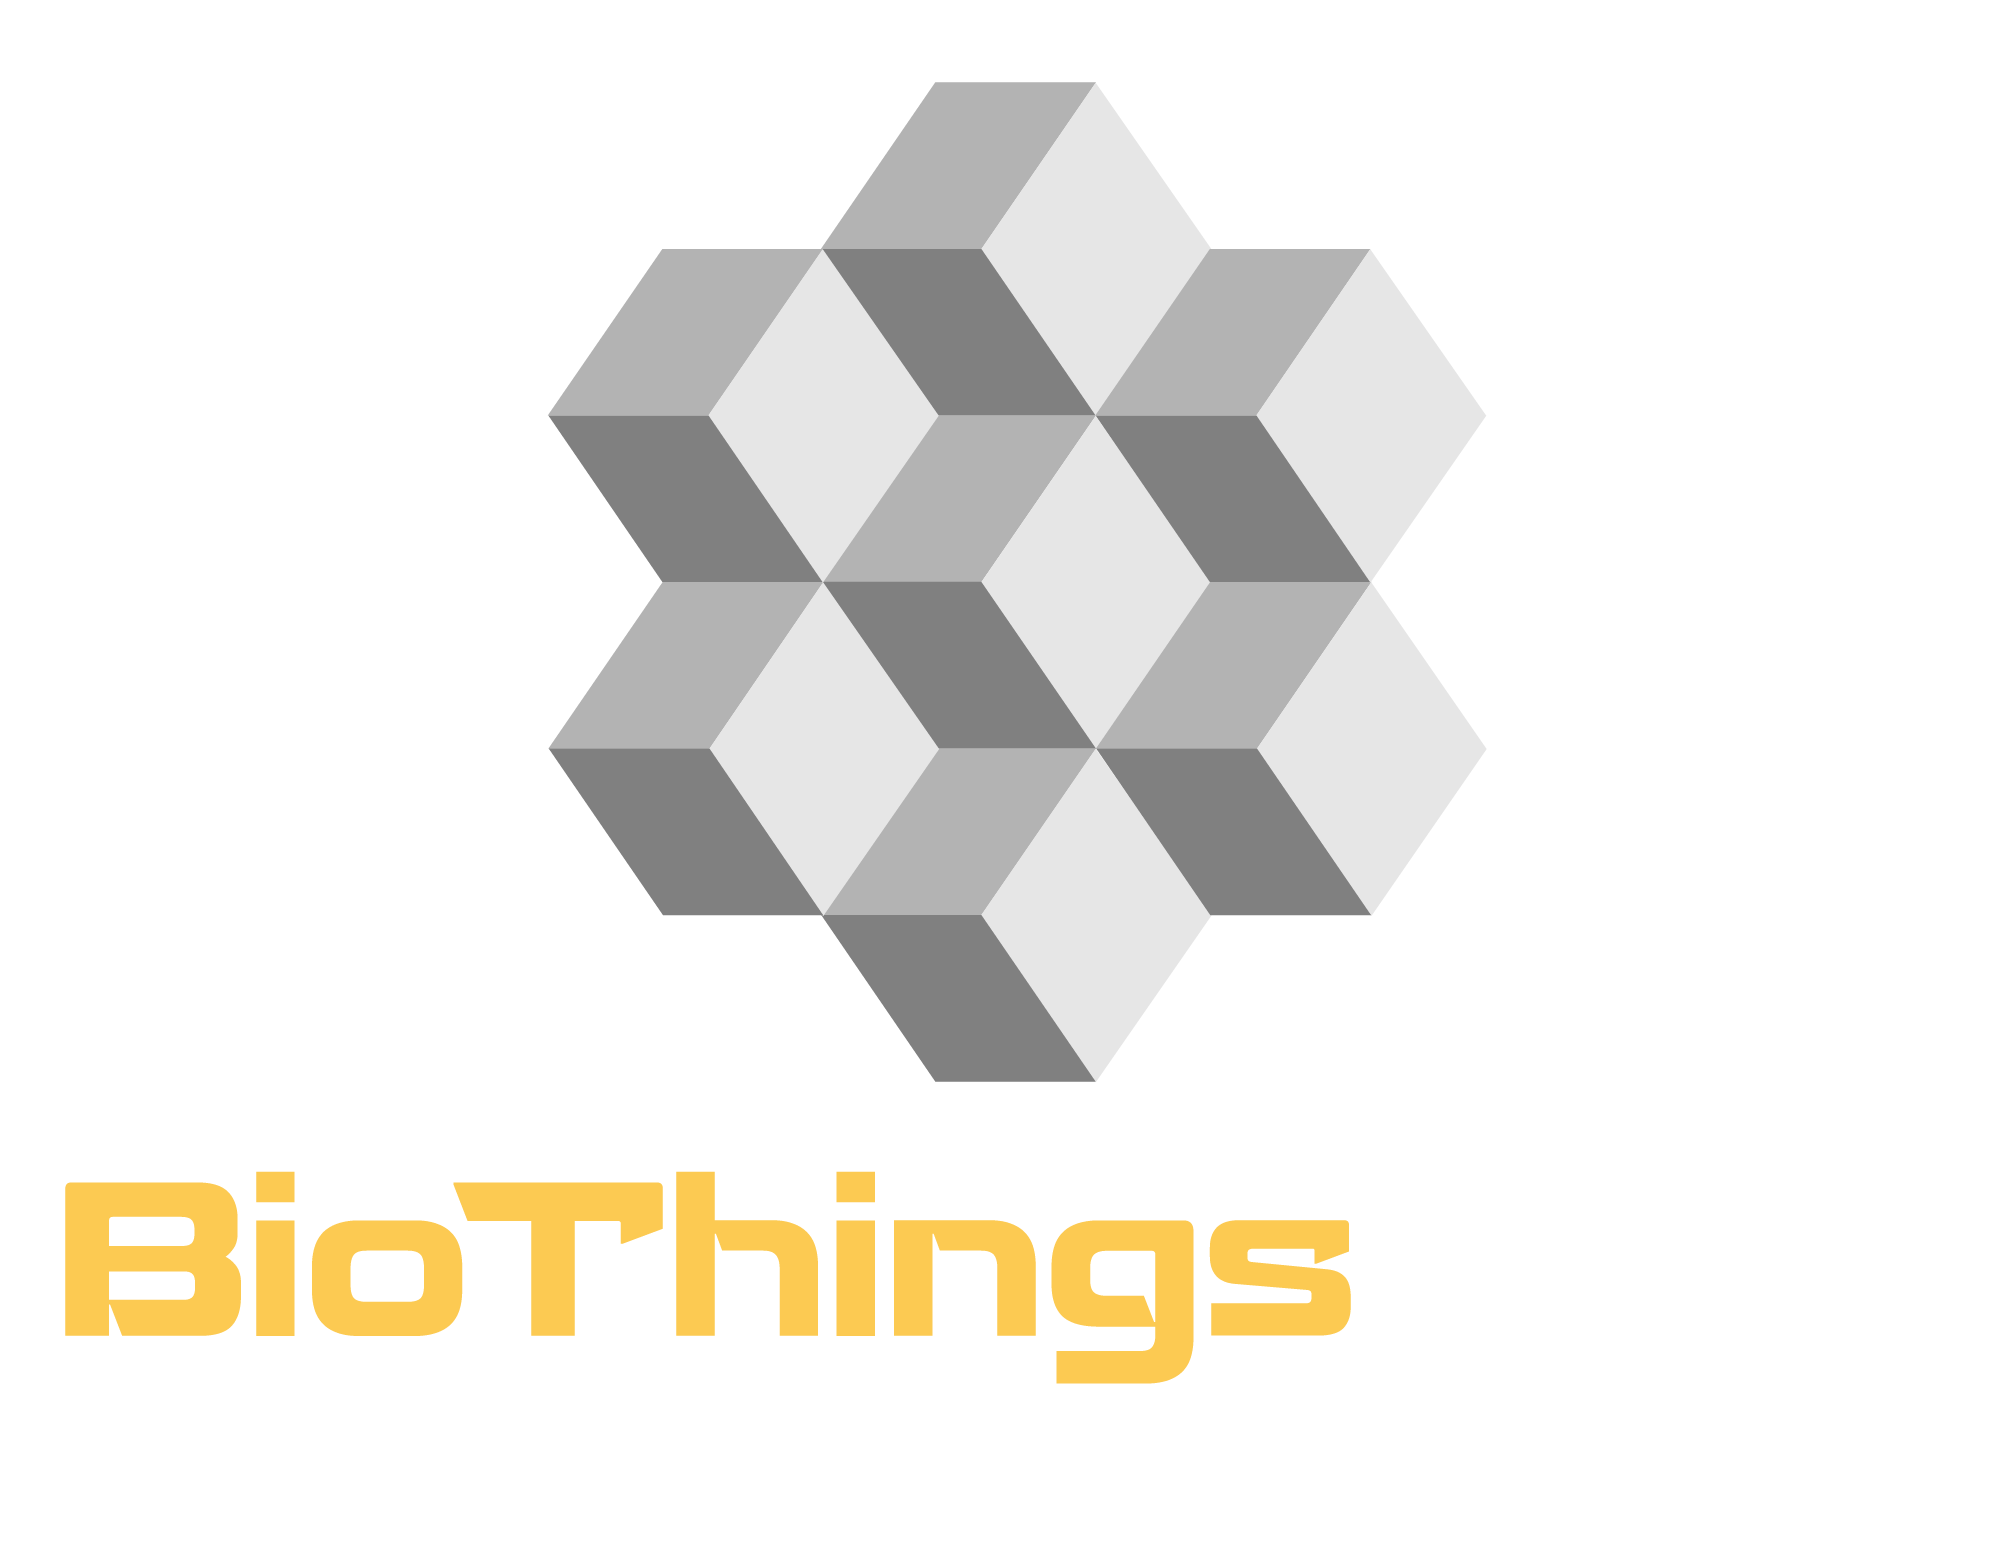 biothings logo